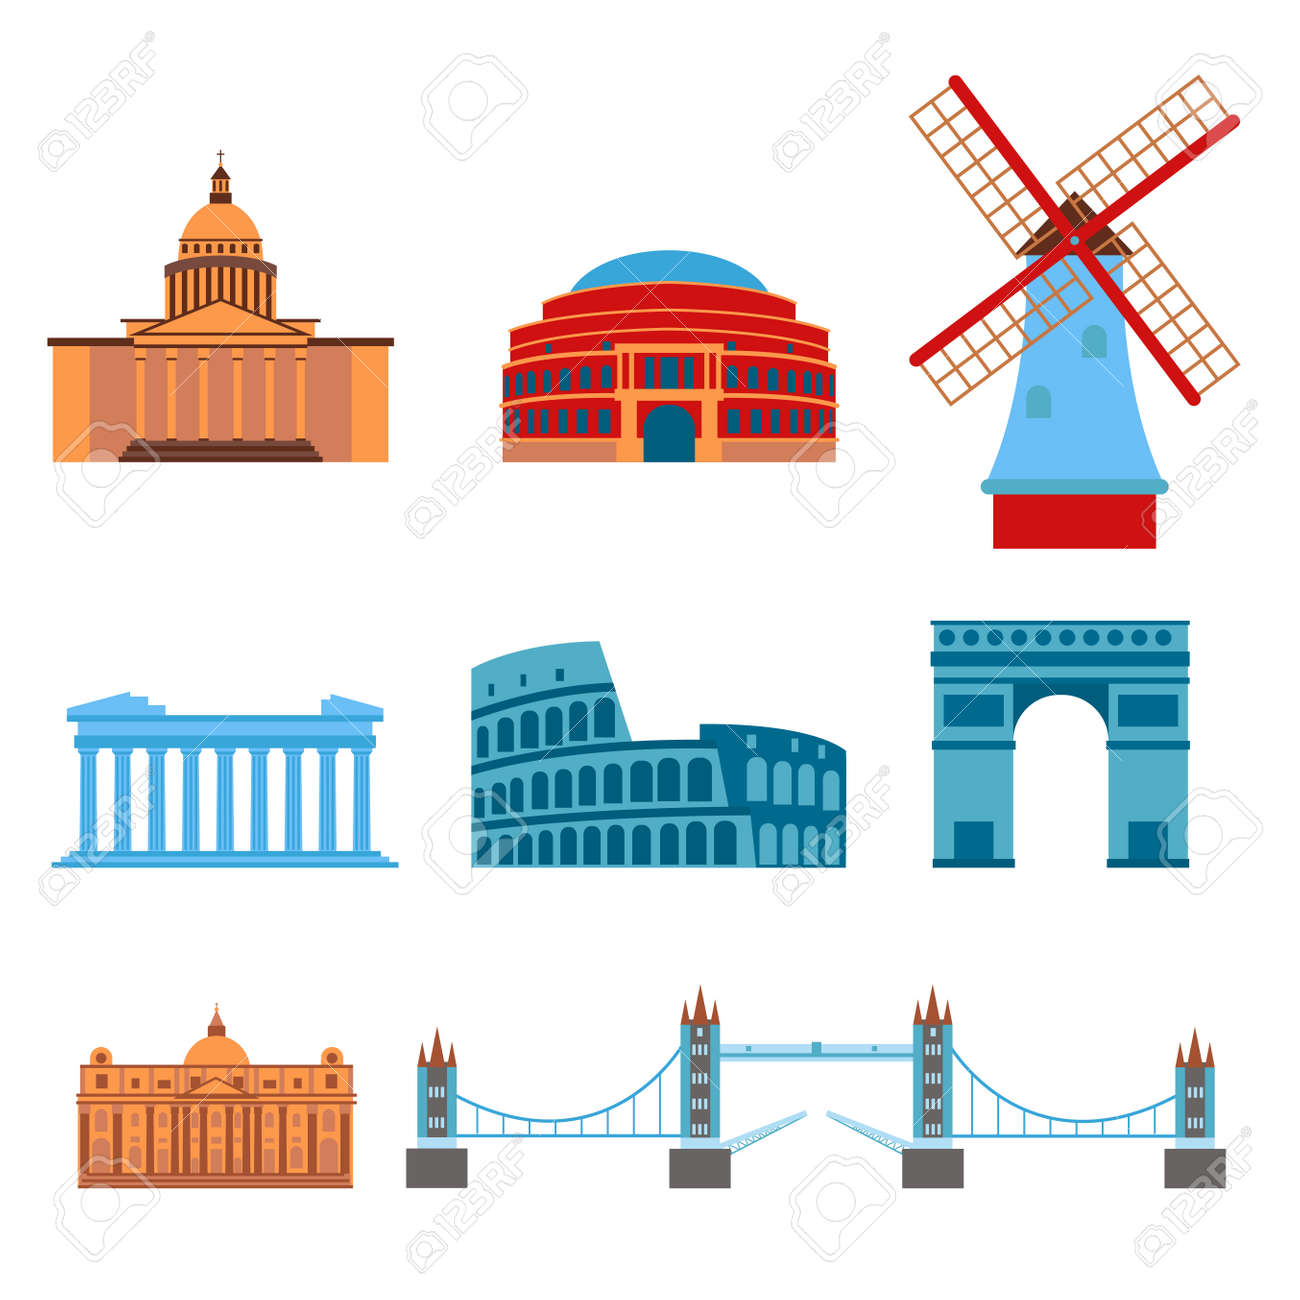 Euro Trip Tourism Travel Design Famous Building And Euro Adventure Royalty Free Cliparts Vectors And Stock Illustration Image 81143104